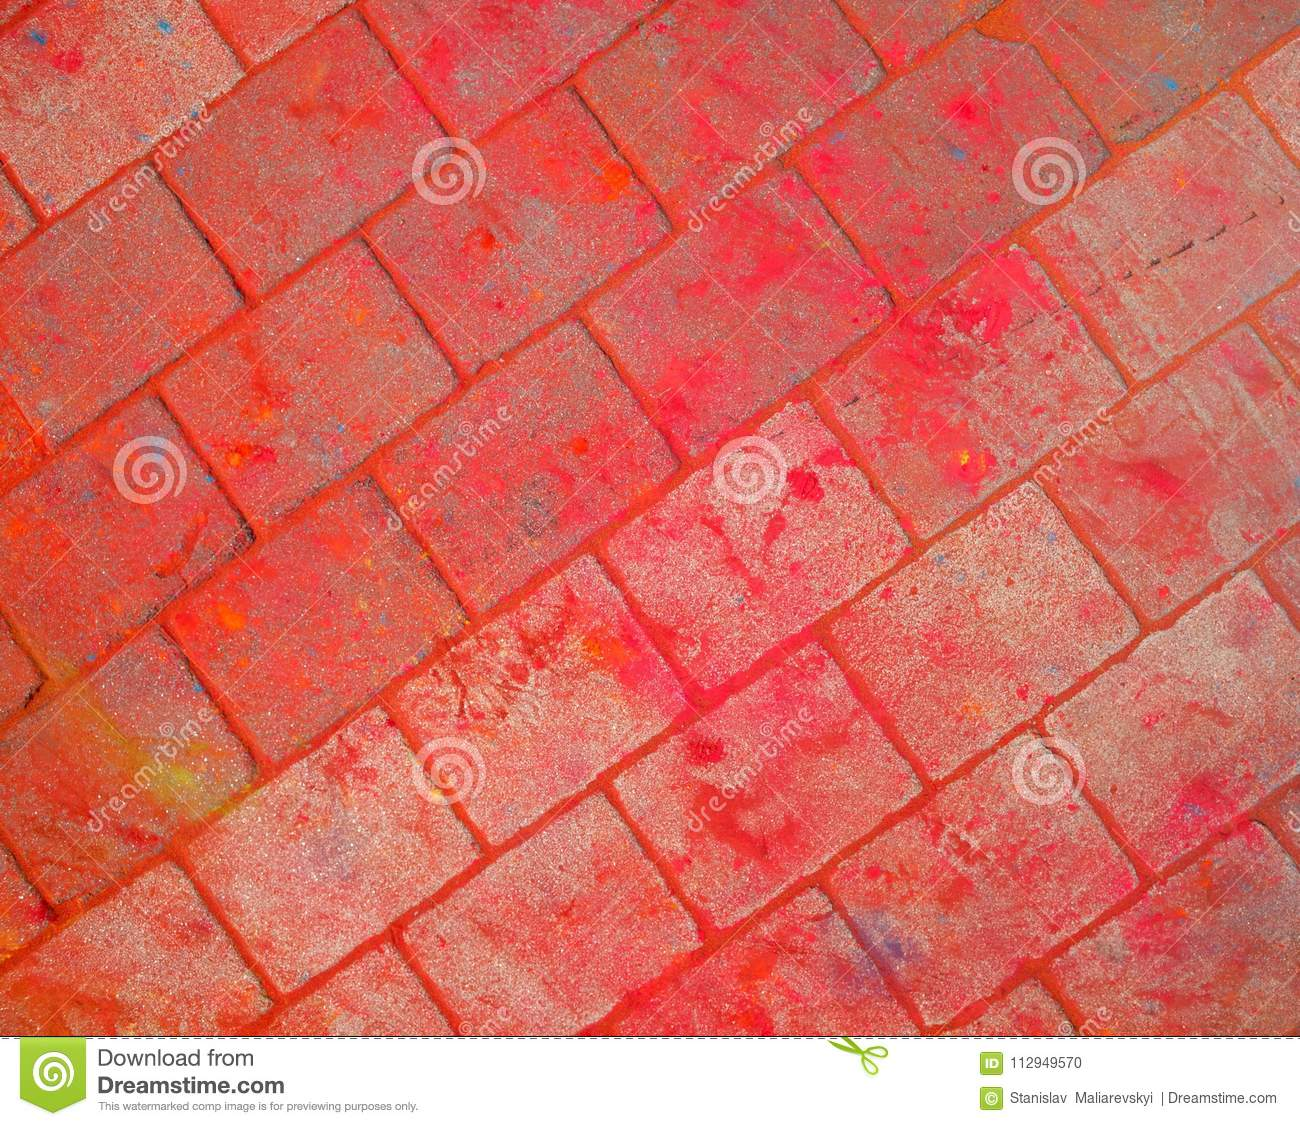 The texture of the asphalt. Multi-colored stains, splashes and traces of paint dry.